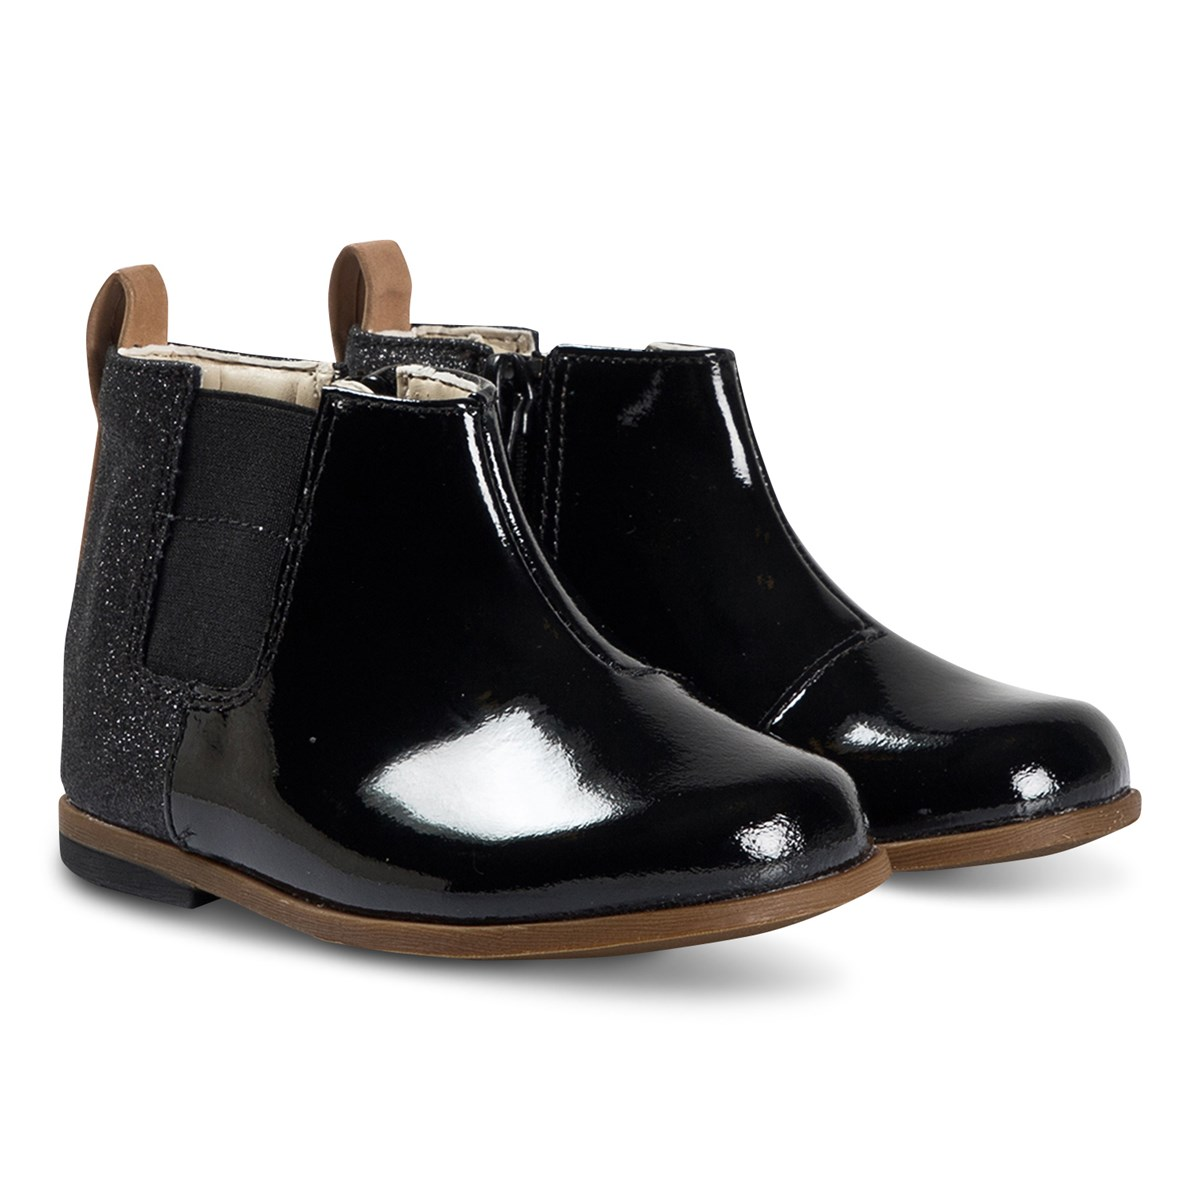 Clarks Black Patent Ankle Boots